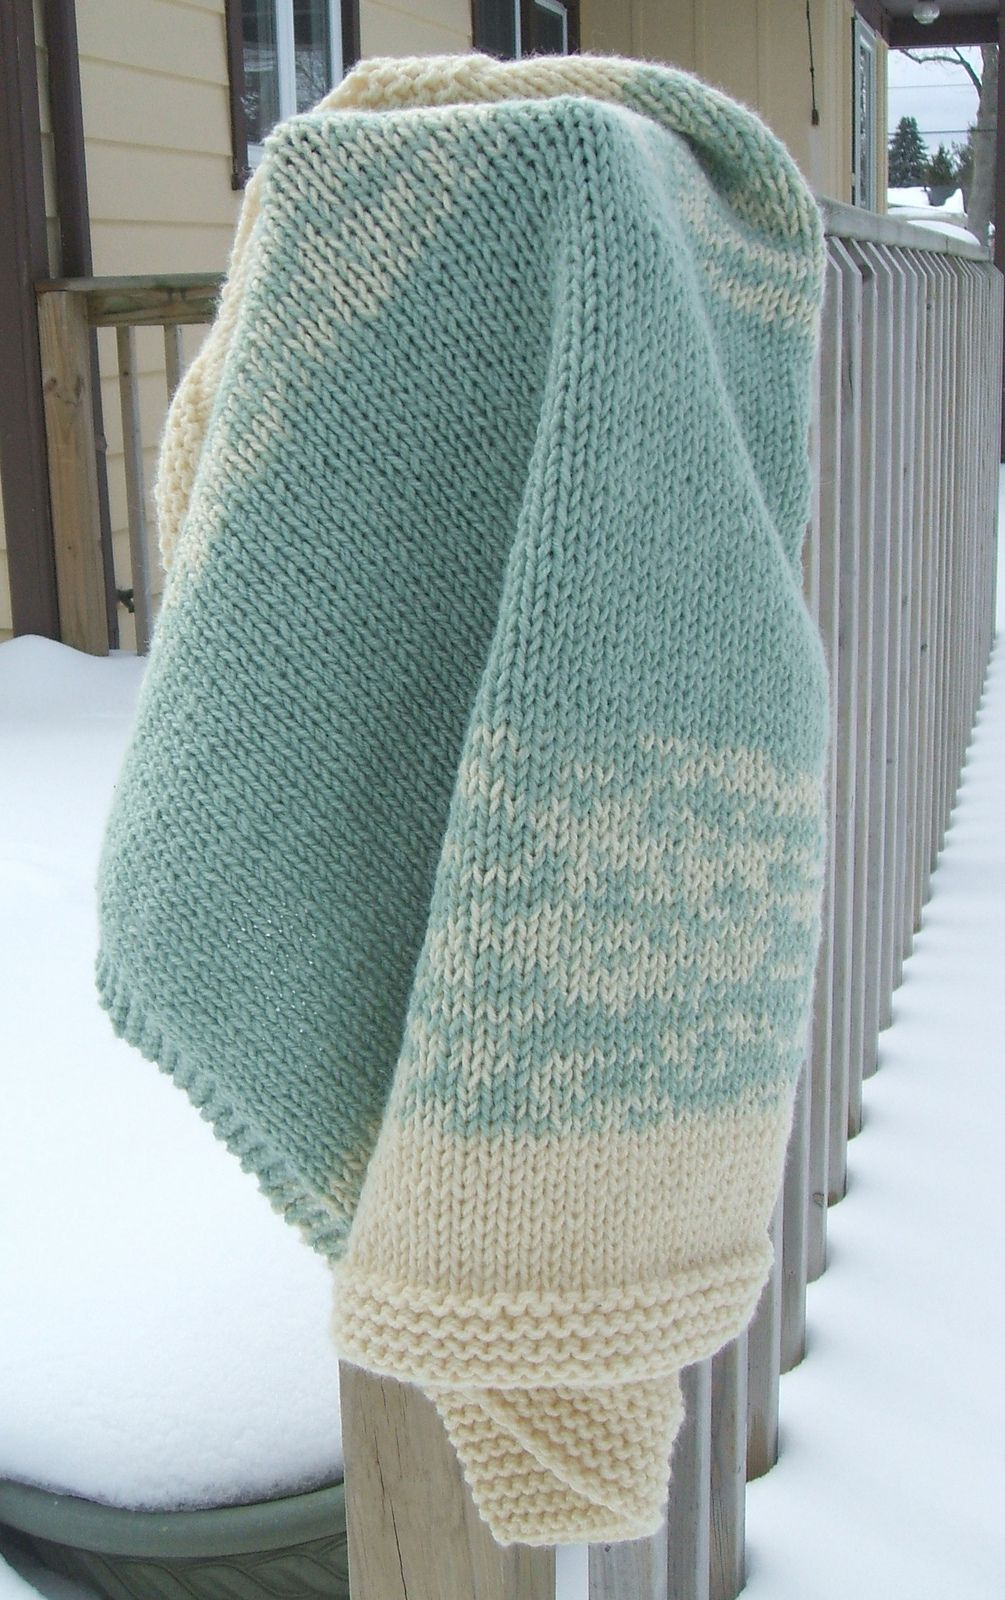 Ravelry: Drifting Stripes 8-Hour Baby Blanket by JoAnne ...